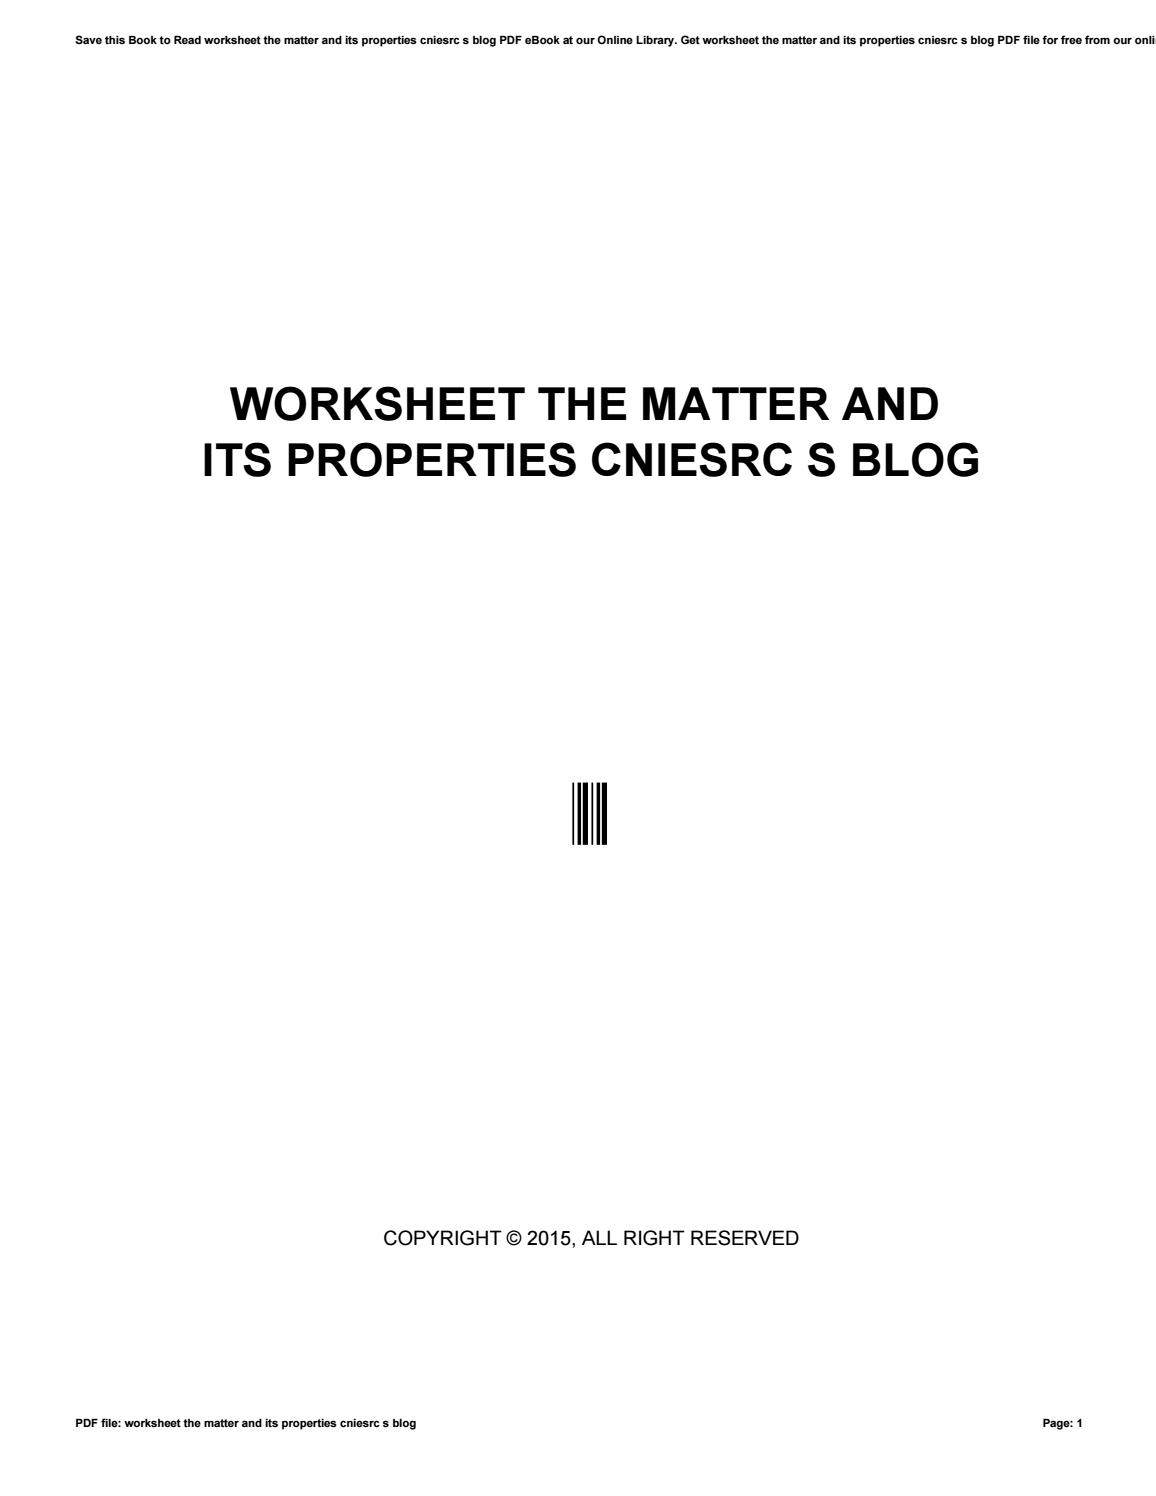 Worksheet The Matter And Its Properties Cniesrc S Blog By